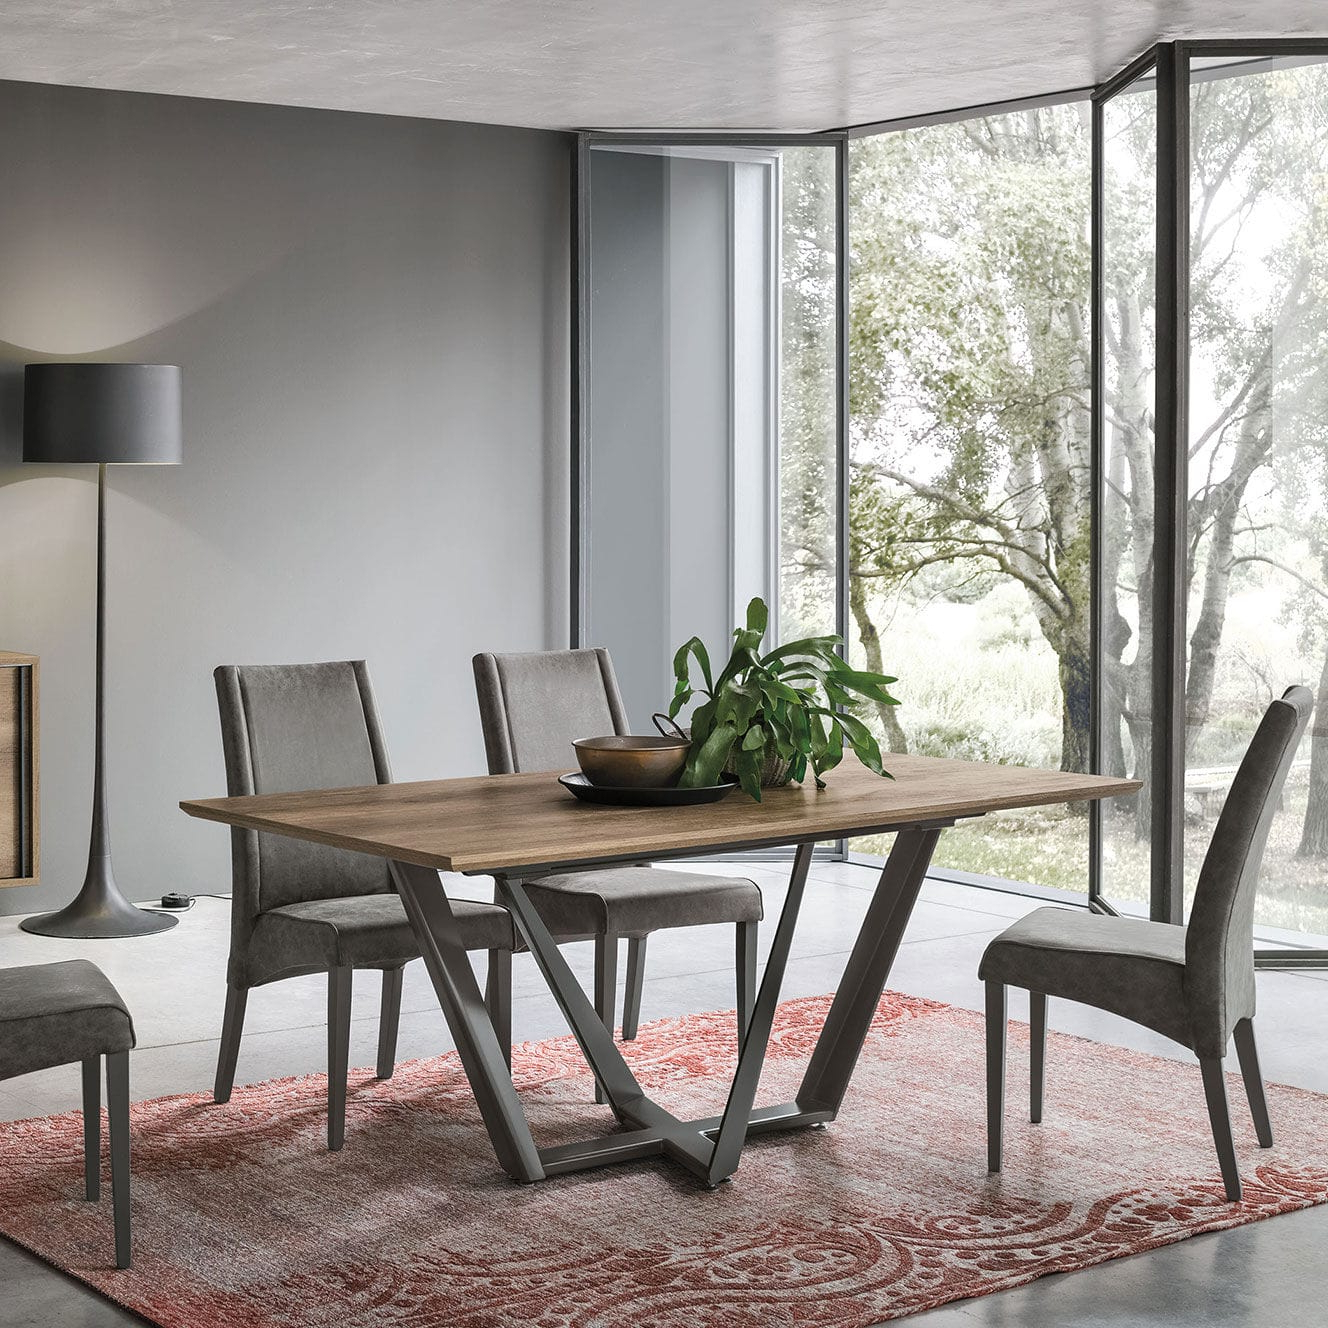 Dining Tables With Brushed Stainless Steel Frame for Fashionable Contemporary Dining Table / Wood Veneer / Brushed Metal Base